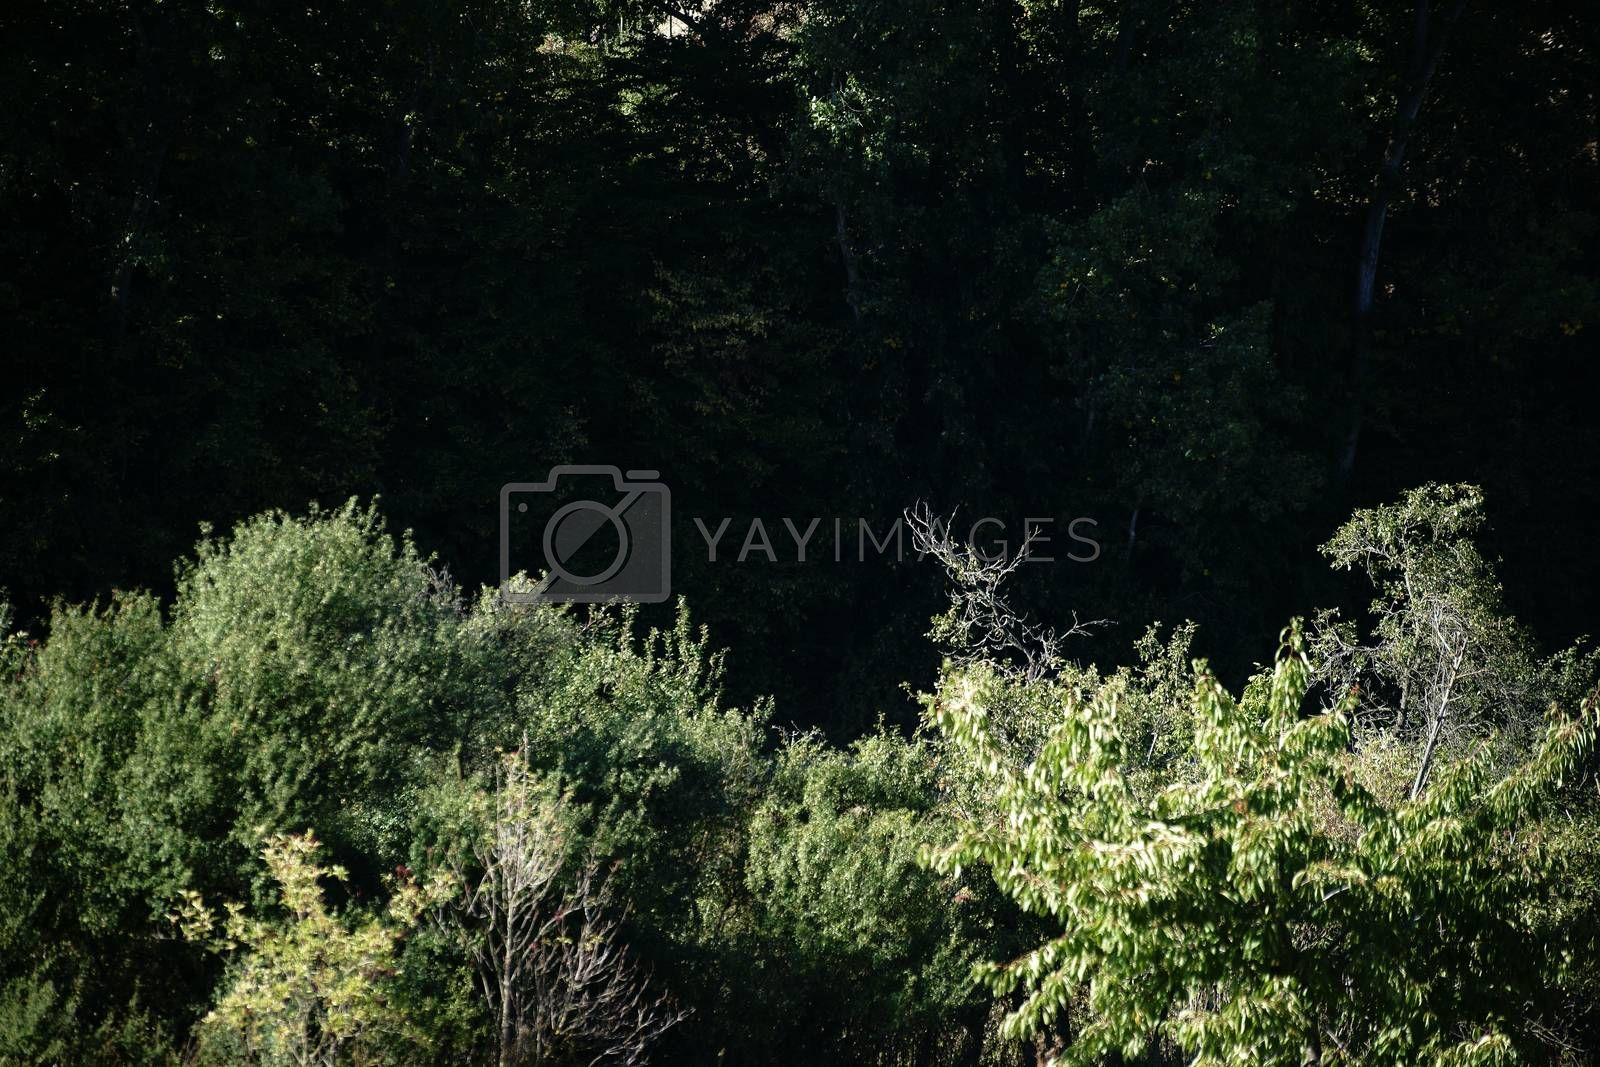 The close-up of the dark thicket of bushes and trees.